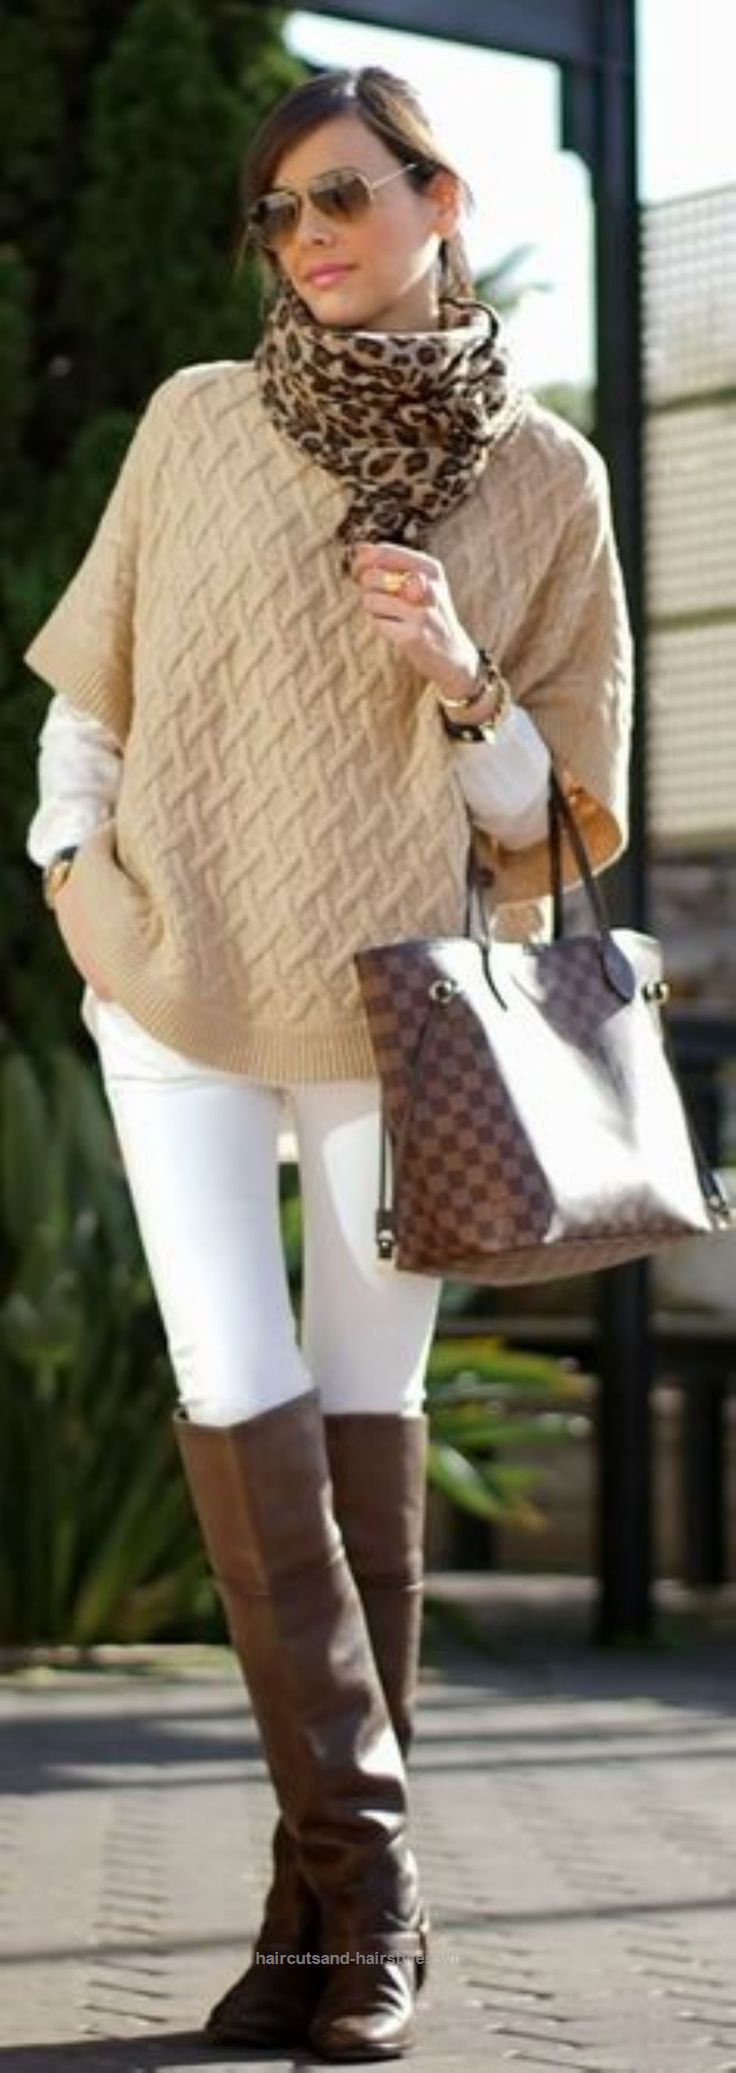 Perfect Stunning 40 Top looks for Over 40 Women Inspiration from www.fashionetter….  The post  Stunning 40 Top looks for Over 40 Women Inspiration from www.fashionetter…….   ..